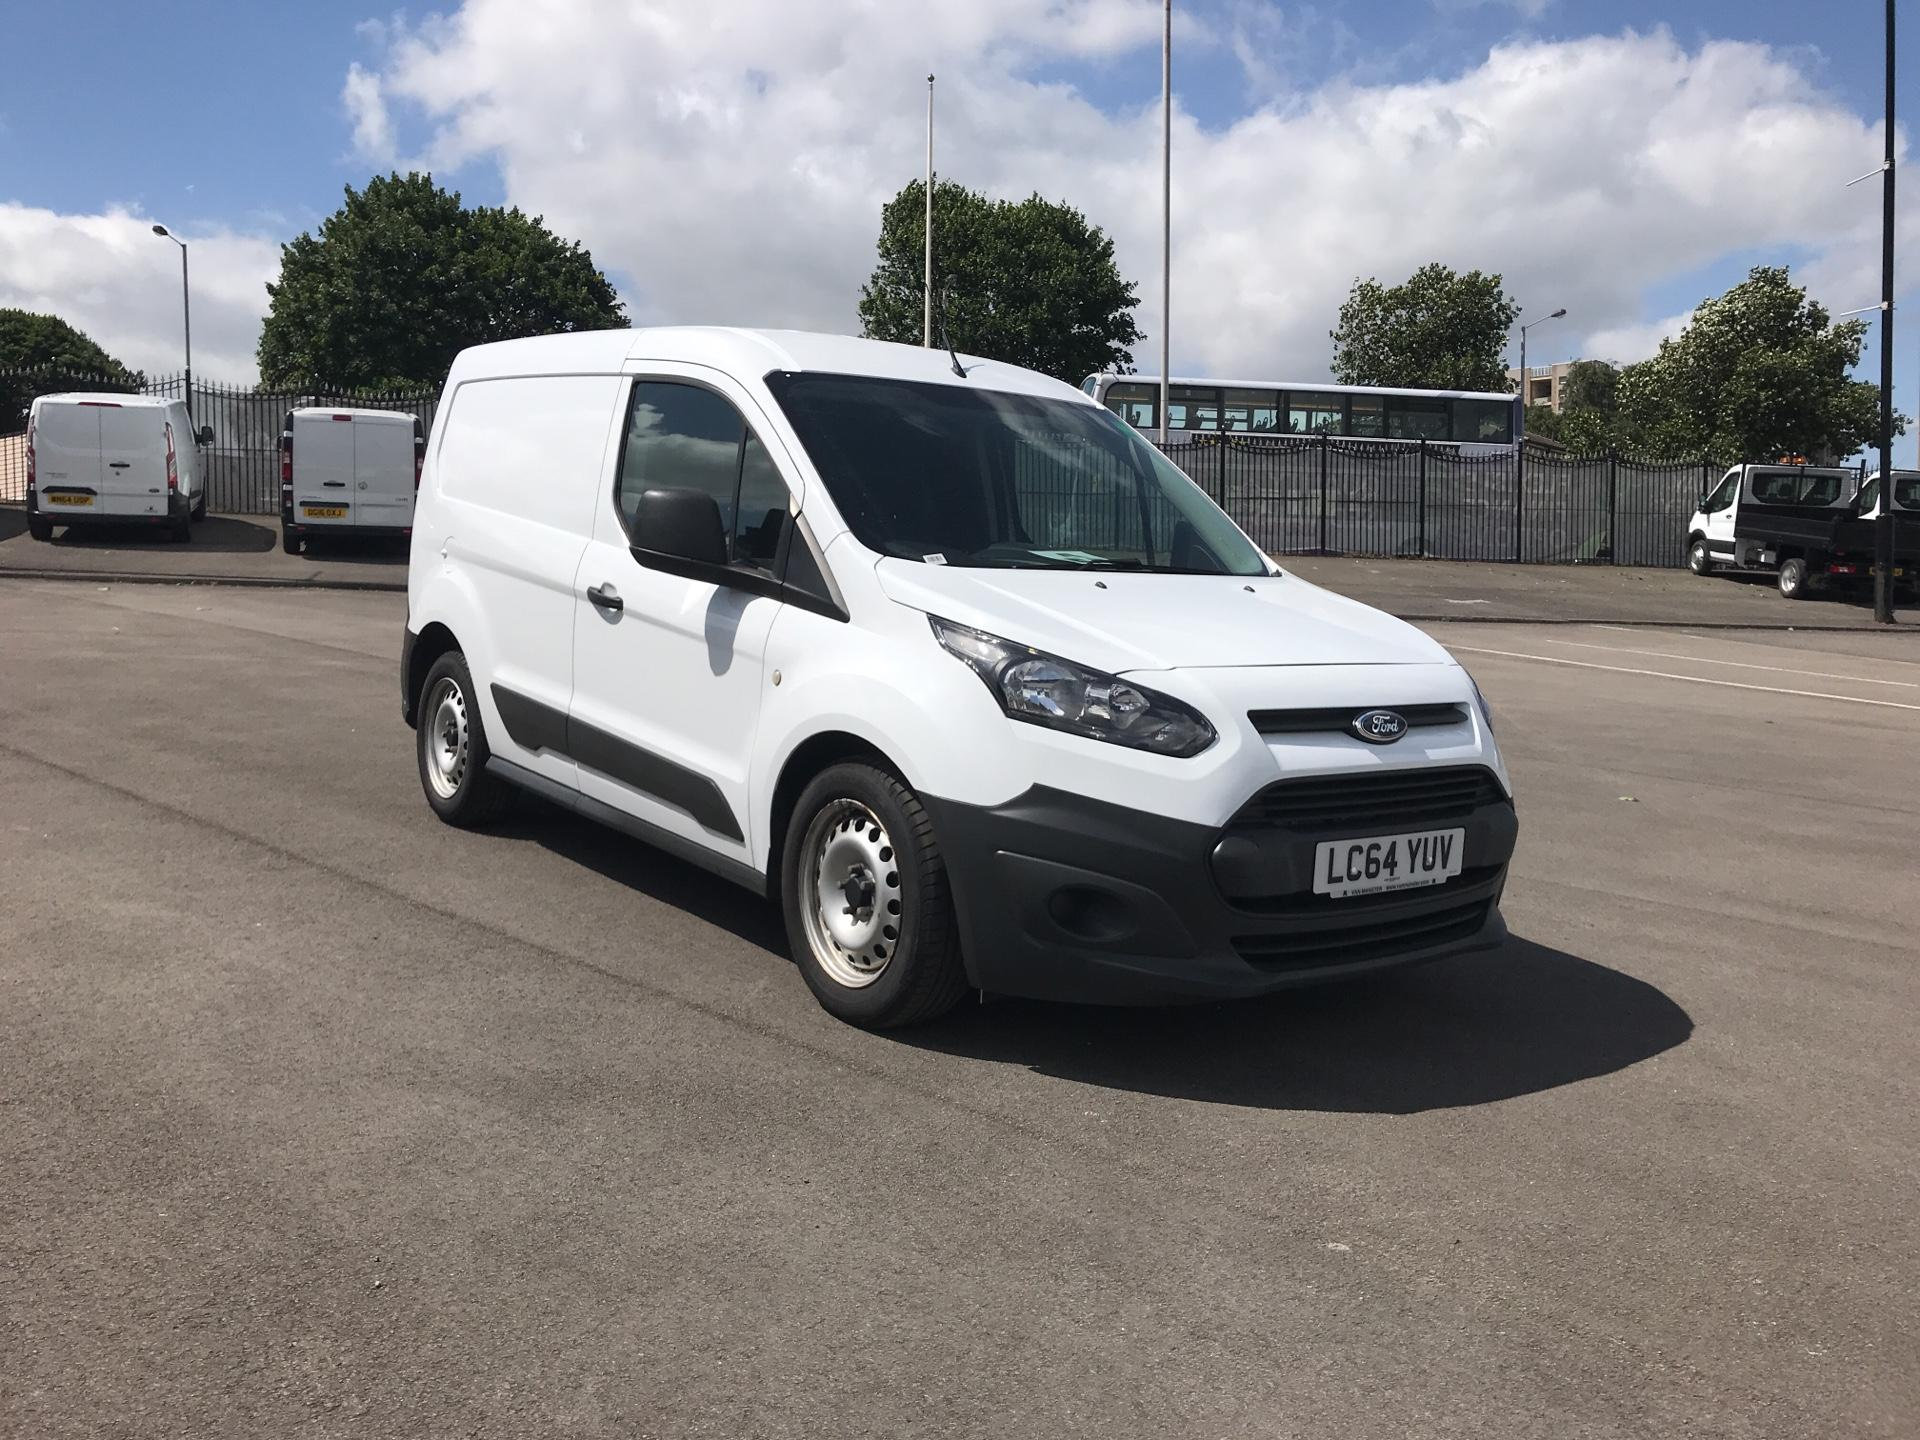 2015 Ford Transit Connect 1.6 Tdci 95Ps Van (LC64YUV)